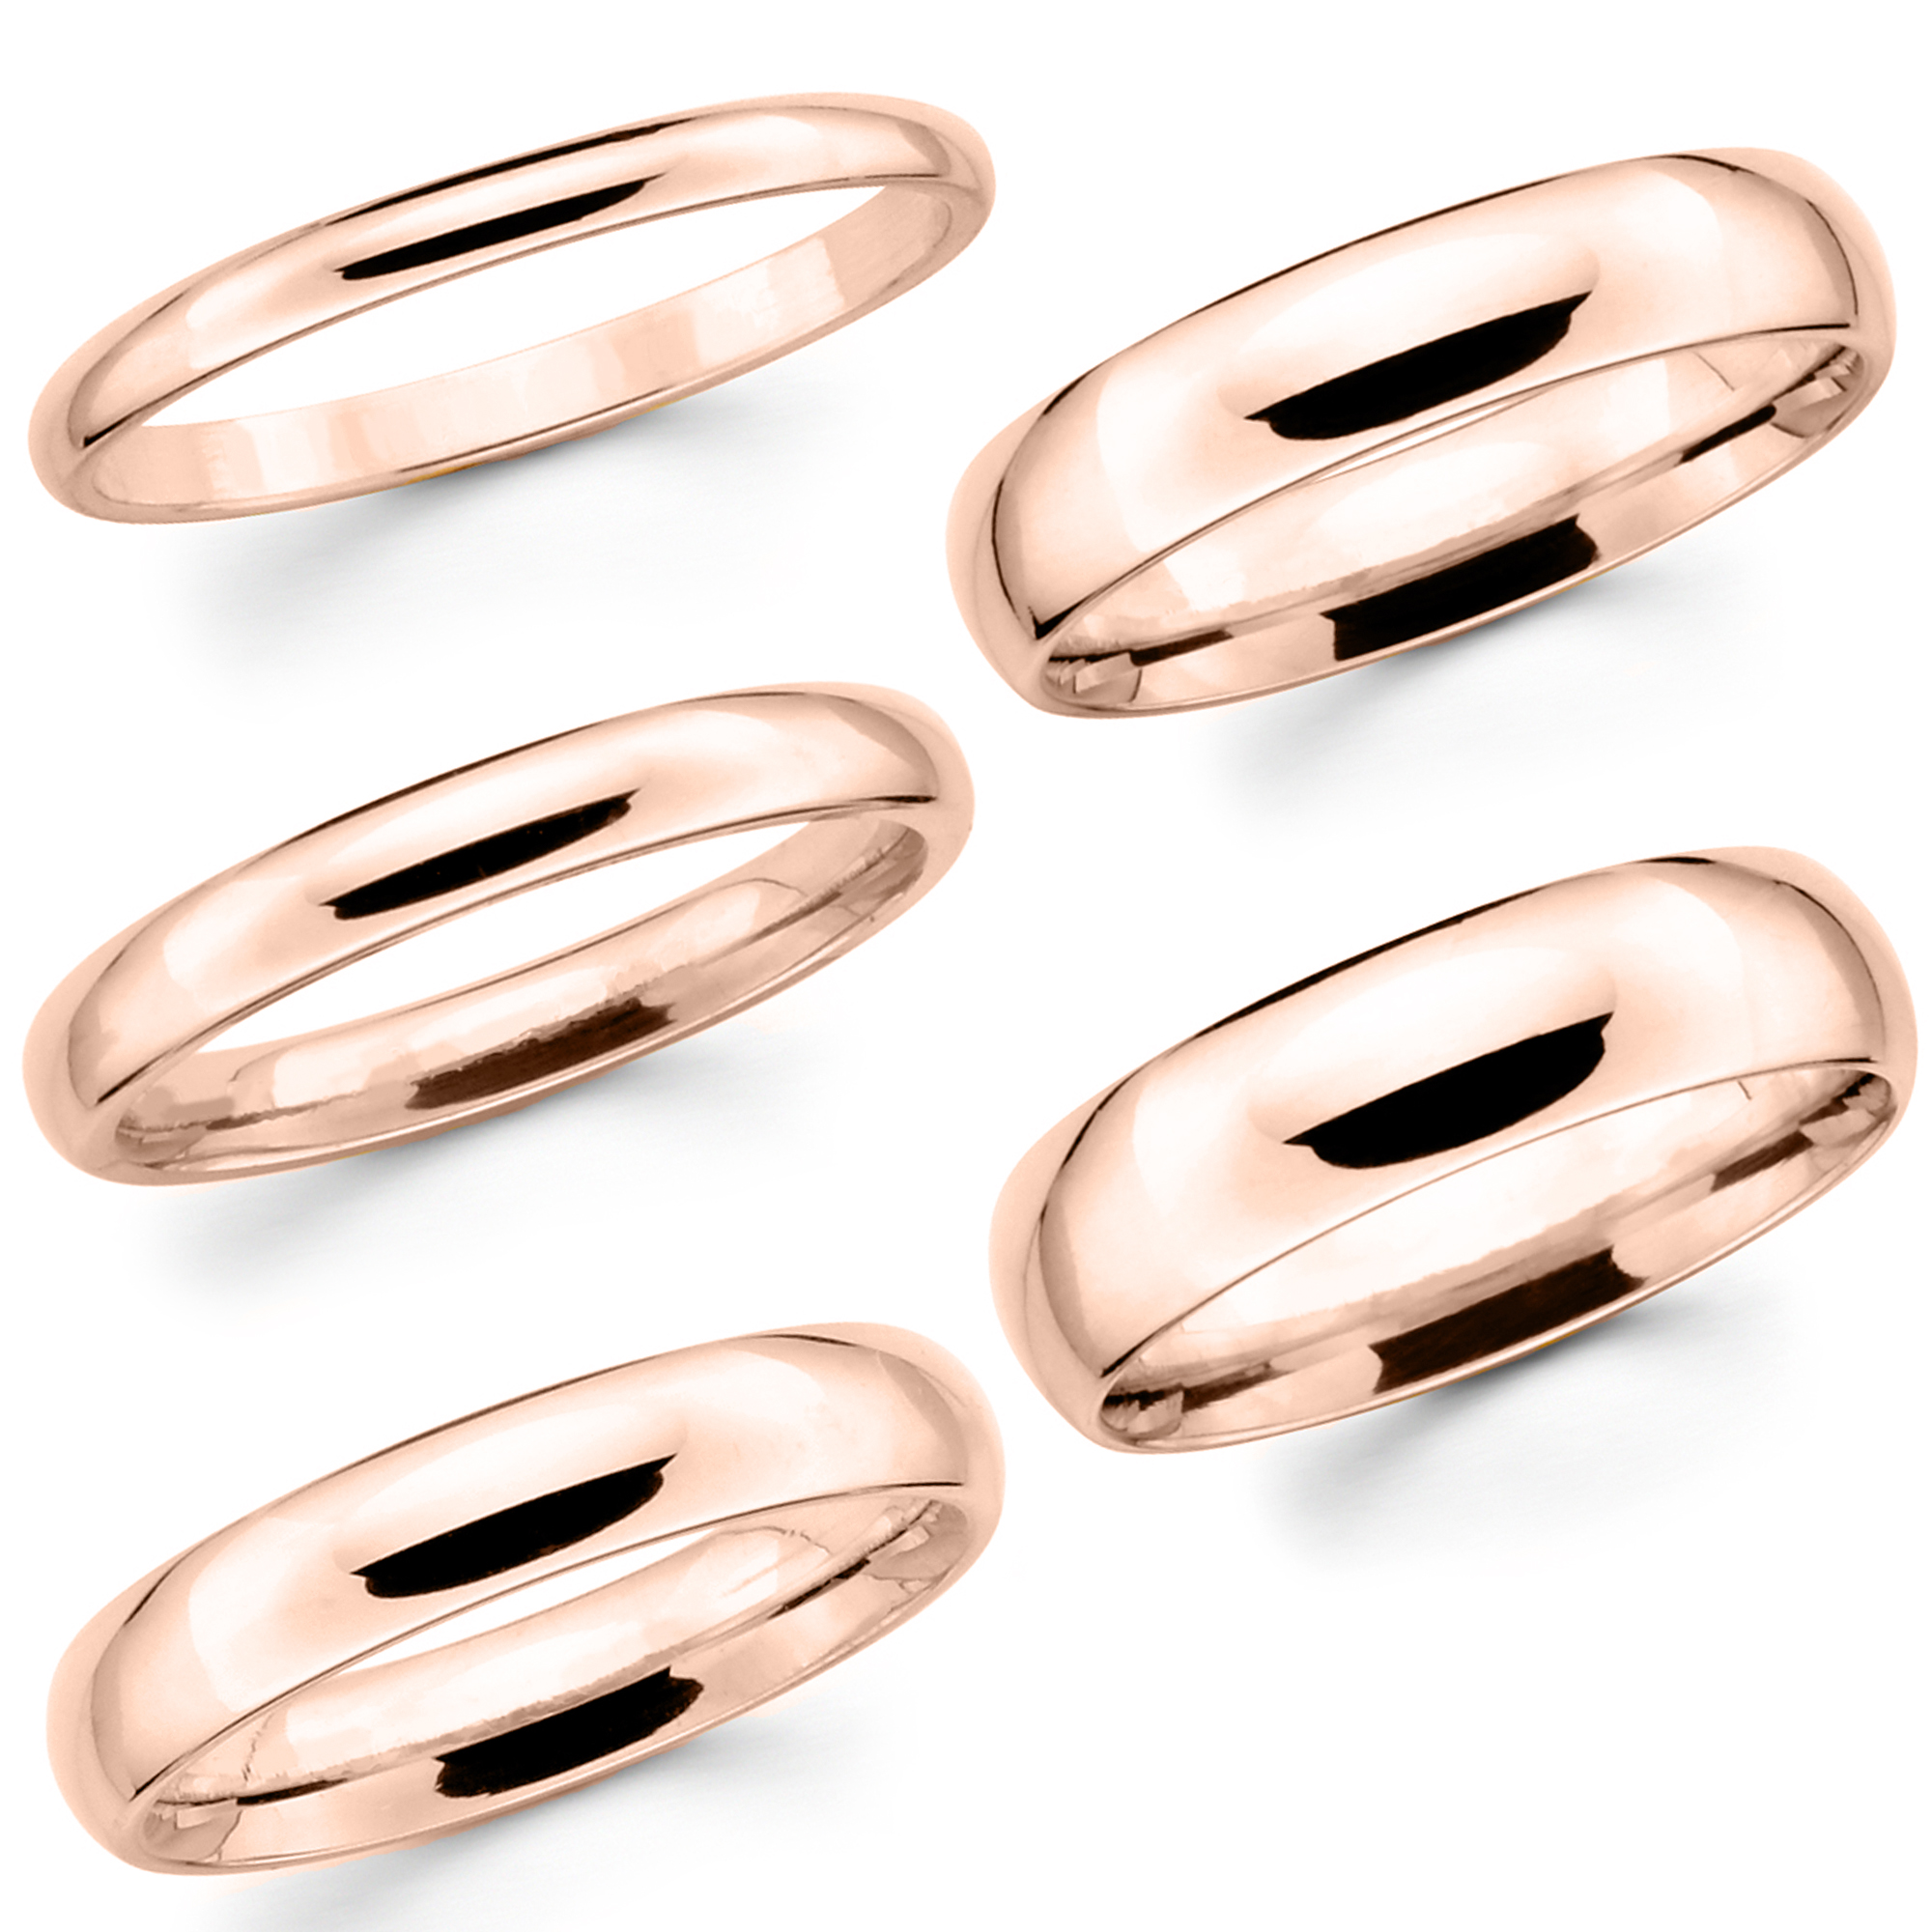 kim men rings wedding llc ring timeless platinum img rose hudson domed bands engagement jewelry carbide band promise gold tungsten fate collections